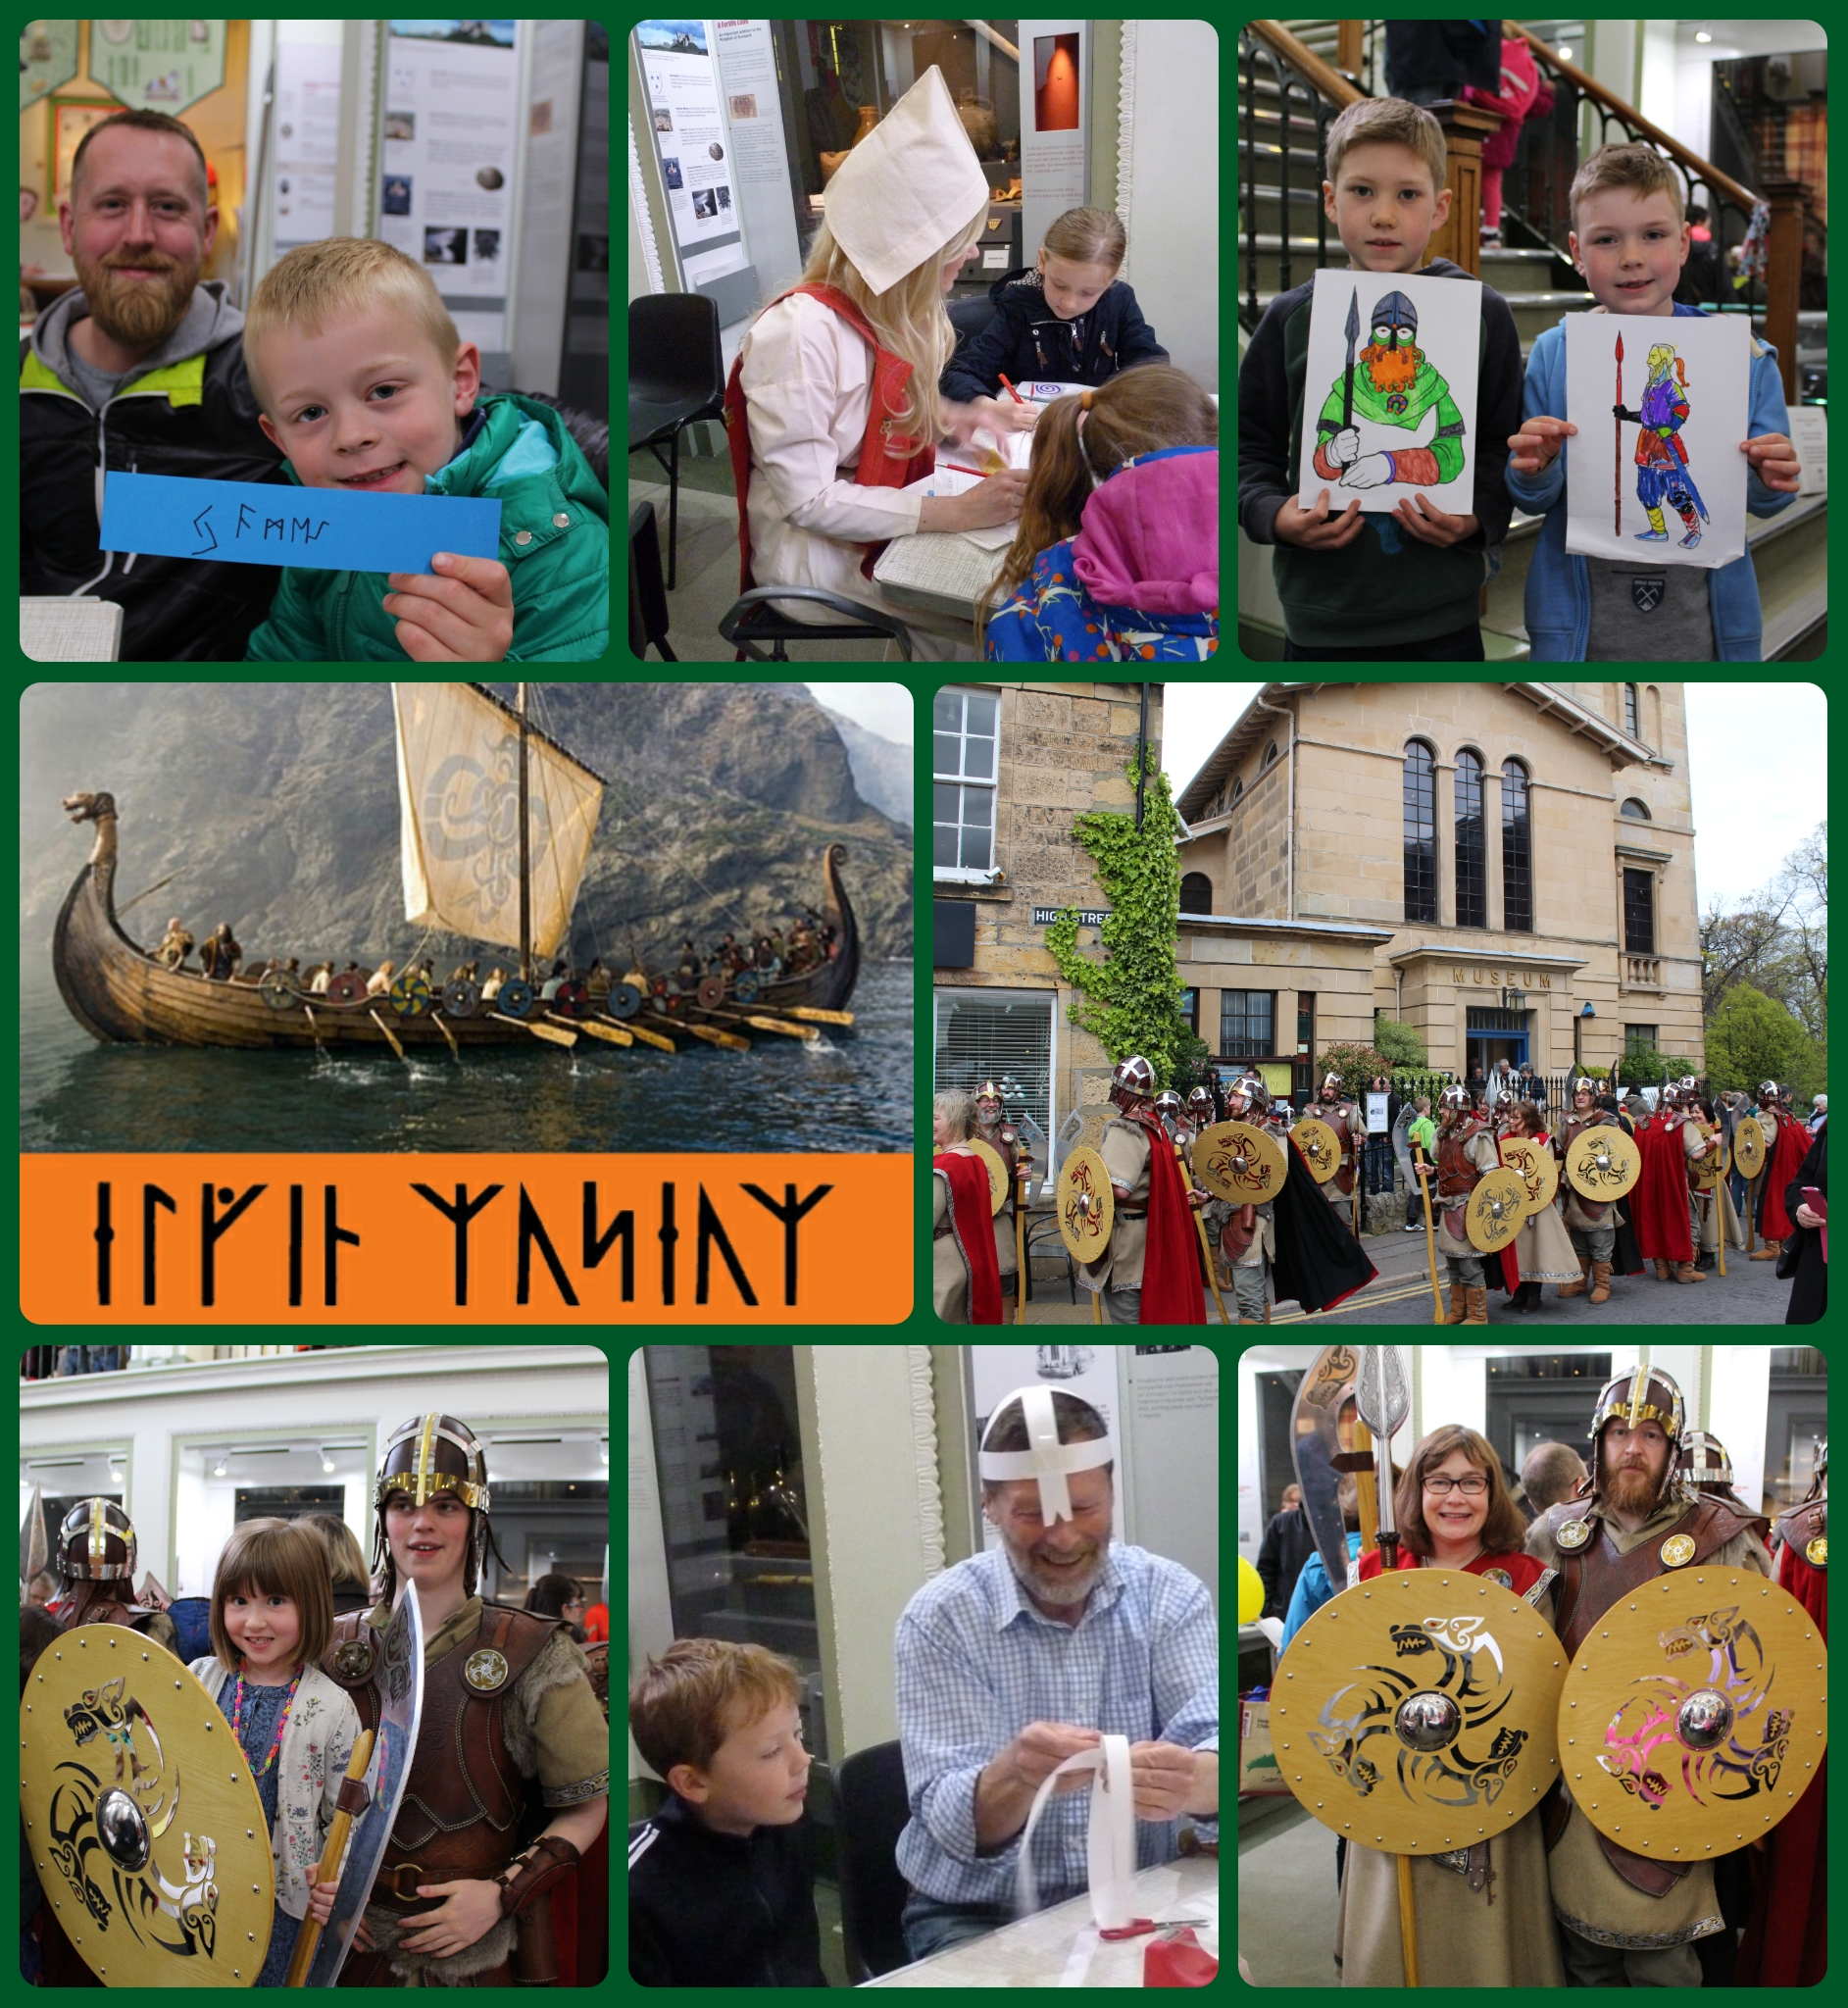 Viking invasion!